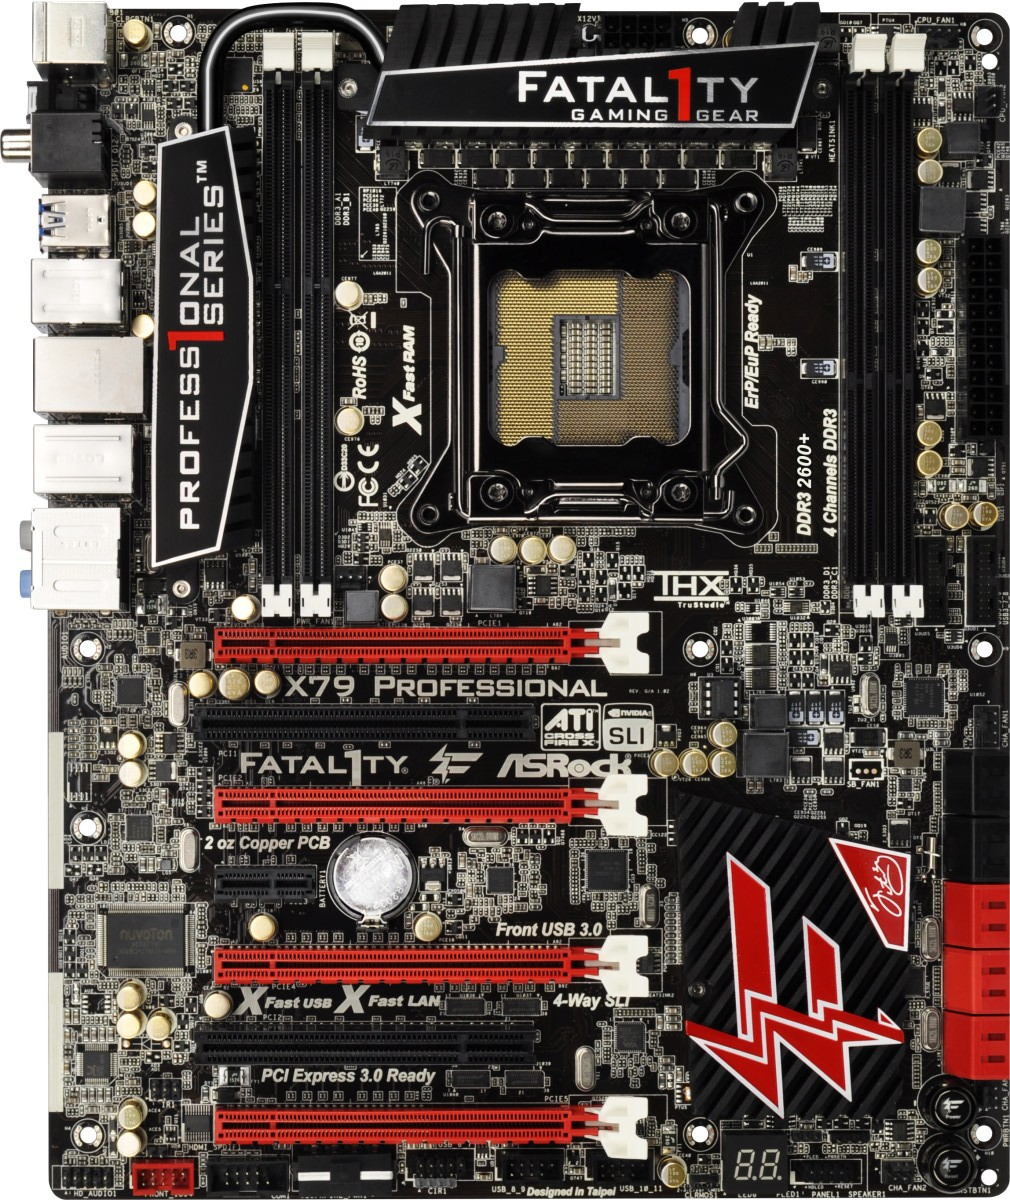 ASROCK FATAL1TY X79 PROFESSIONAL MARVELL SATA 3.0 TELECHARGER PILOTE